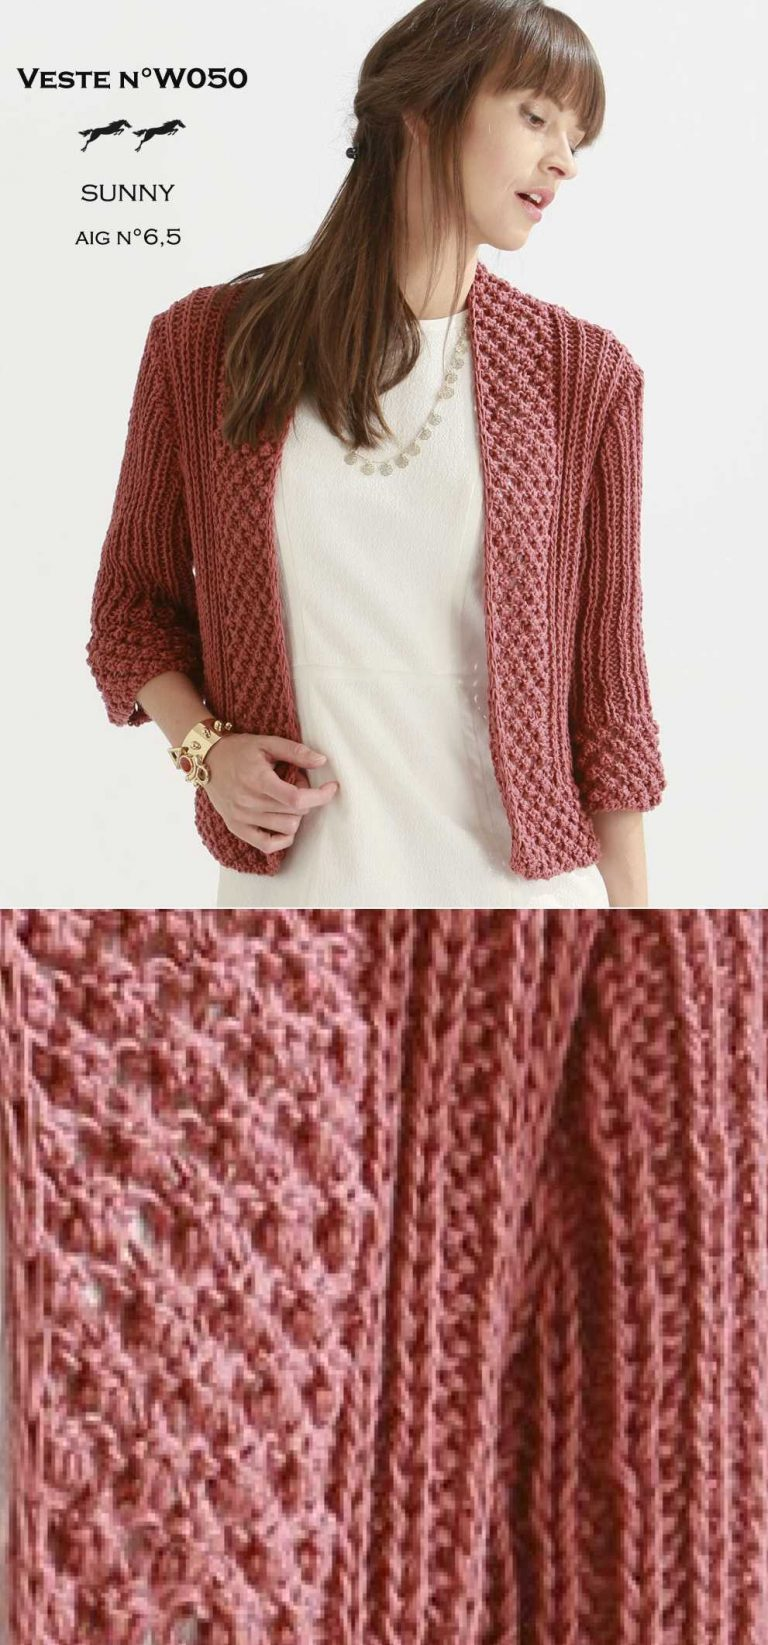 Stylish jacket knit pattern for women with three quarter sleeves, great garment to match